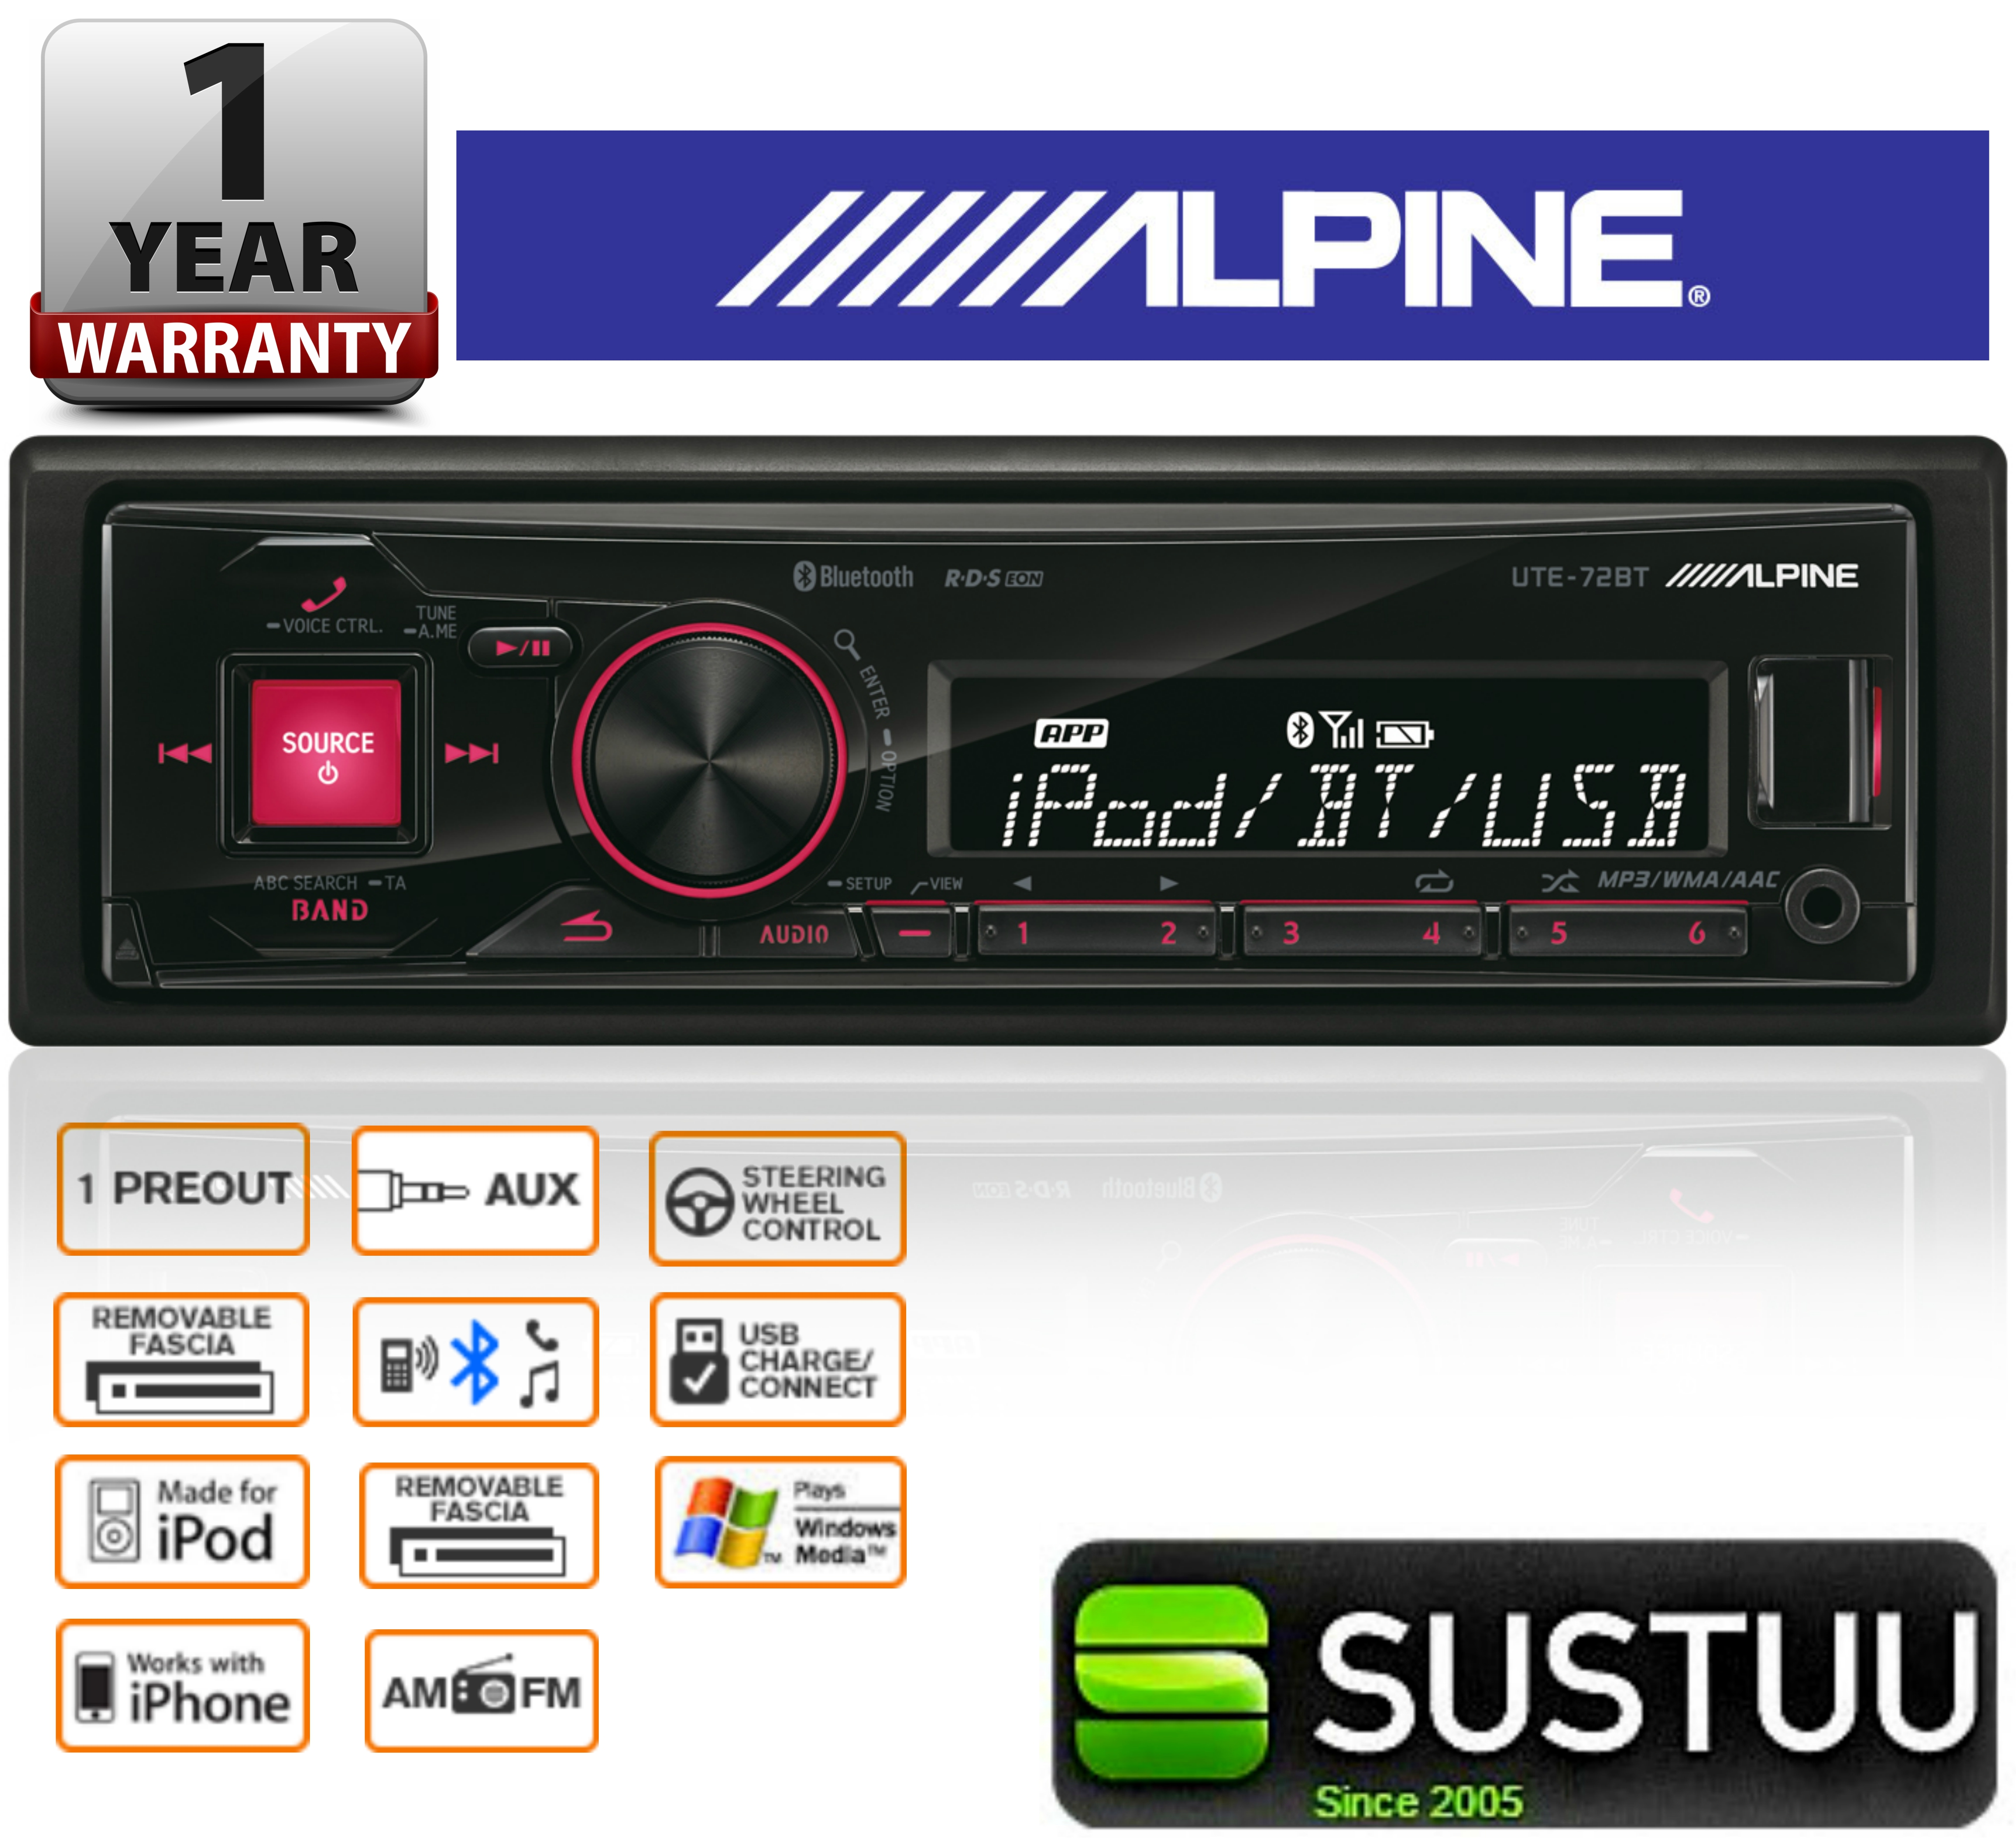 ALPINE UTE-72BT In Car Vehicle Mechless MP3 BLUETOOTH USB AUX iPhone iPod Stereo